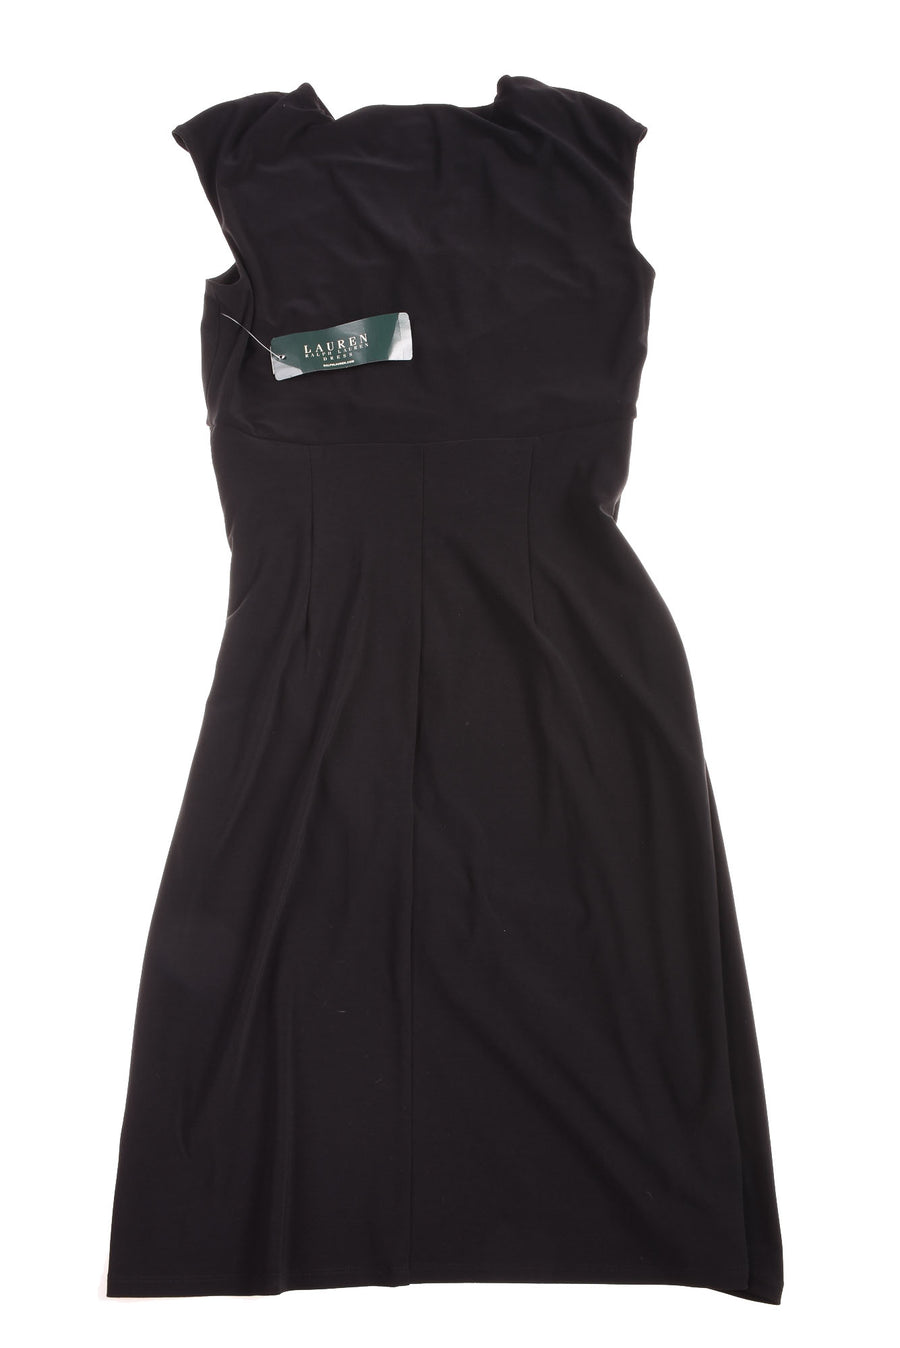 NEW Ralph Lauren Women's Dress 4 Black